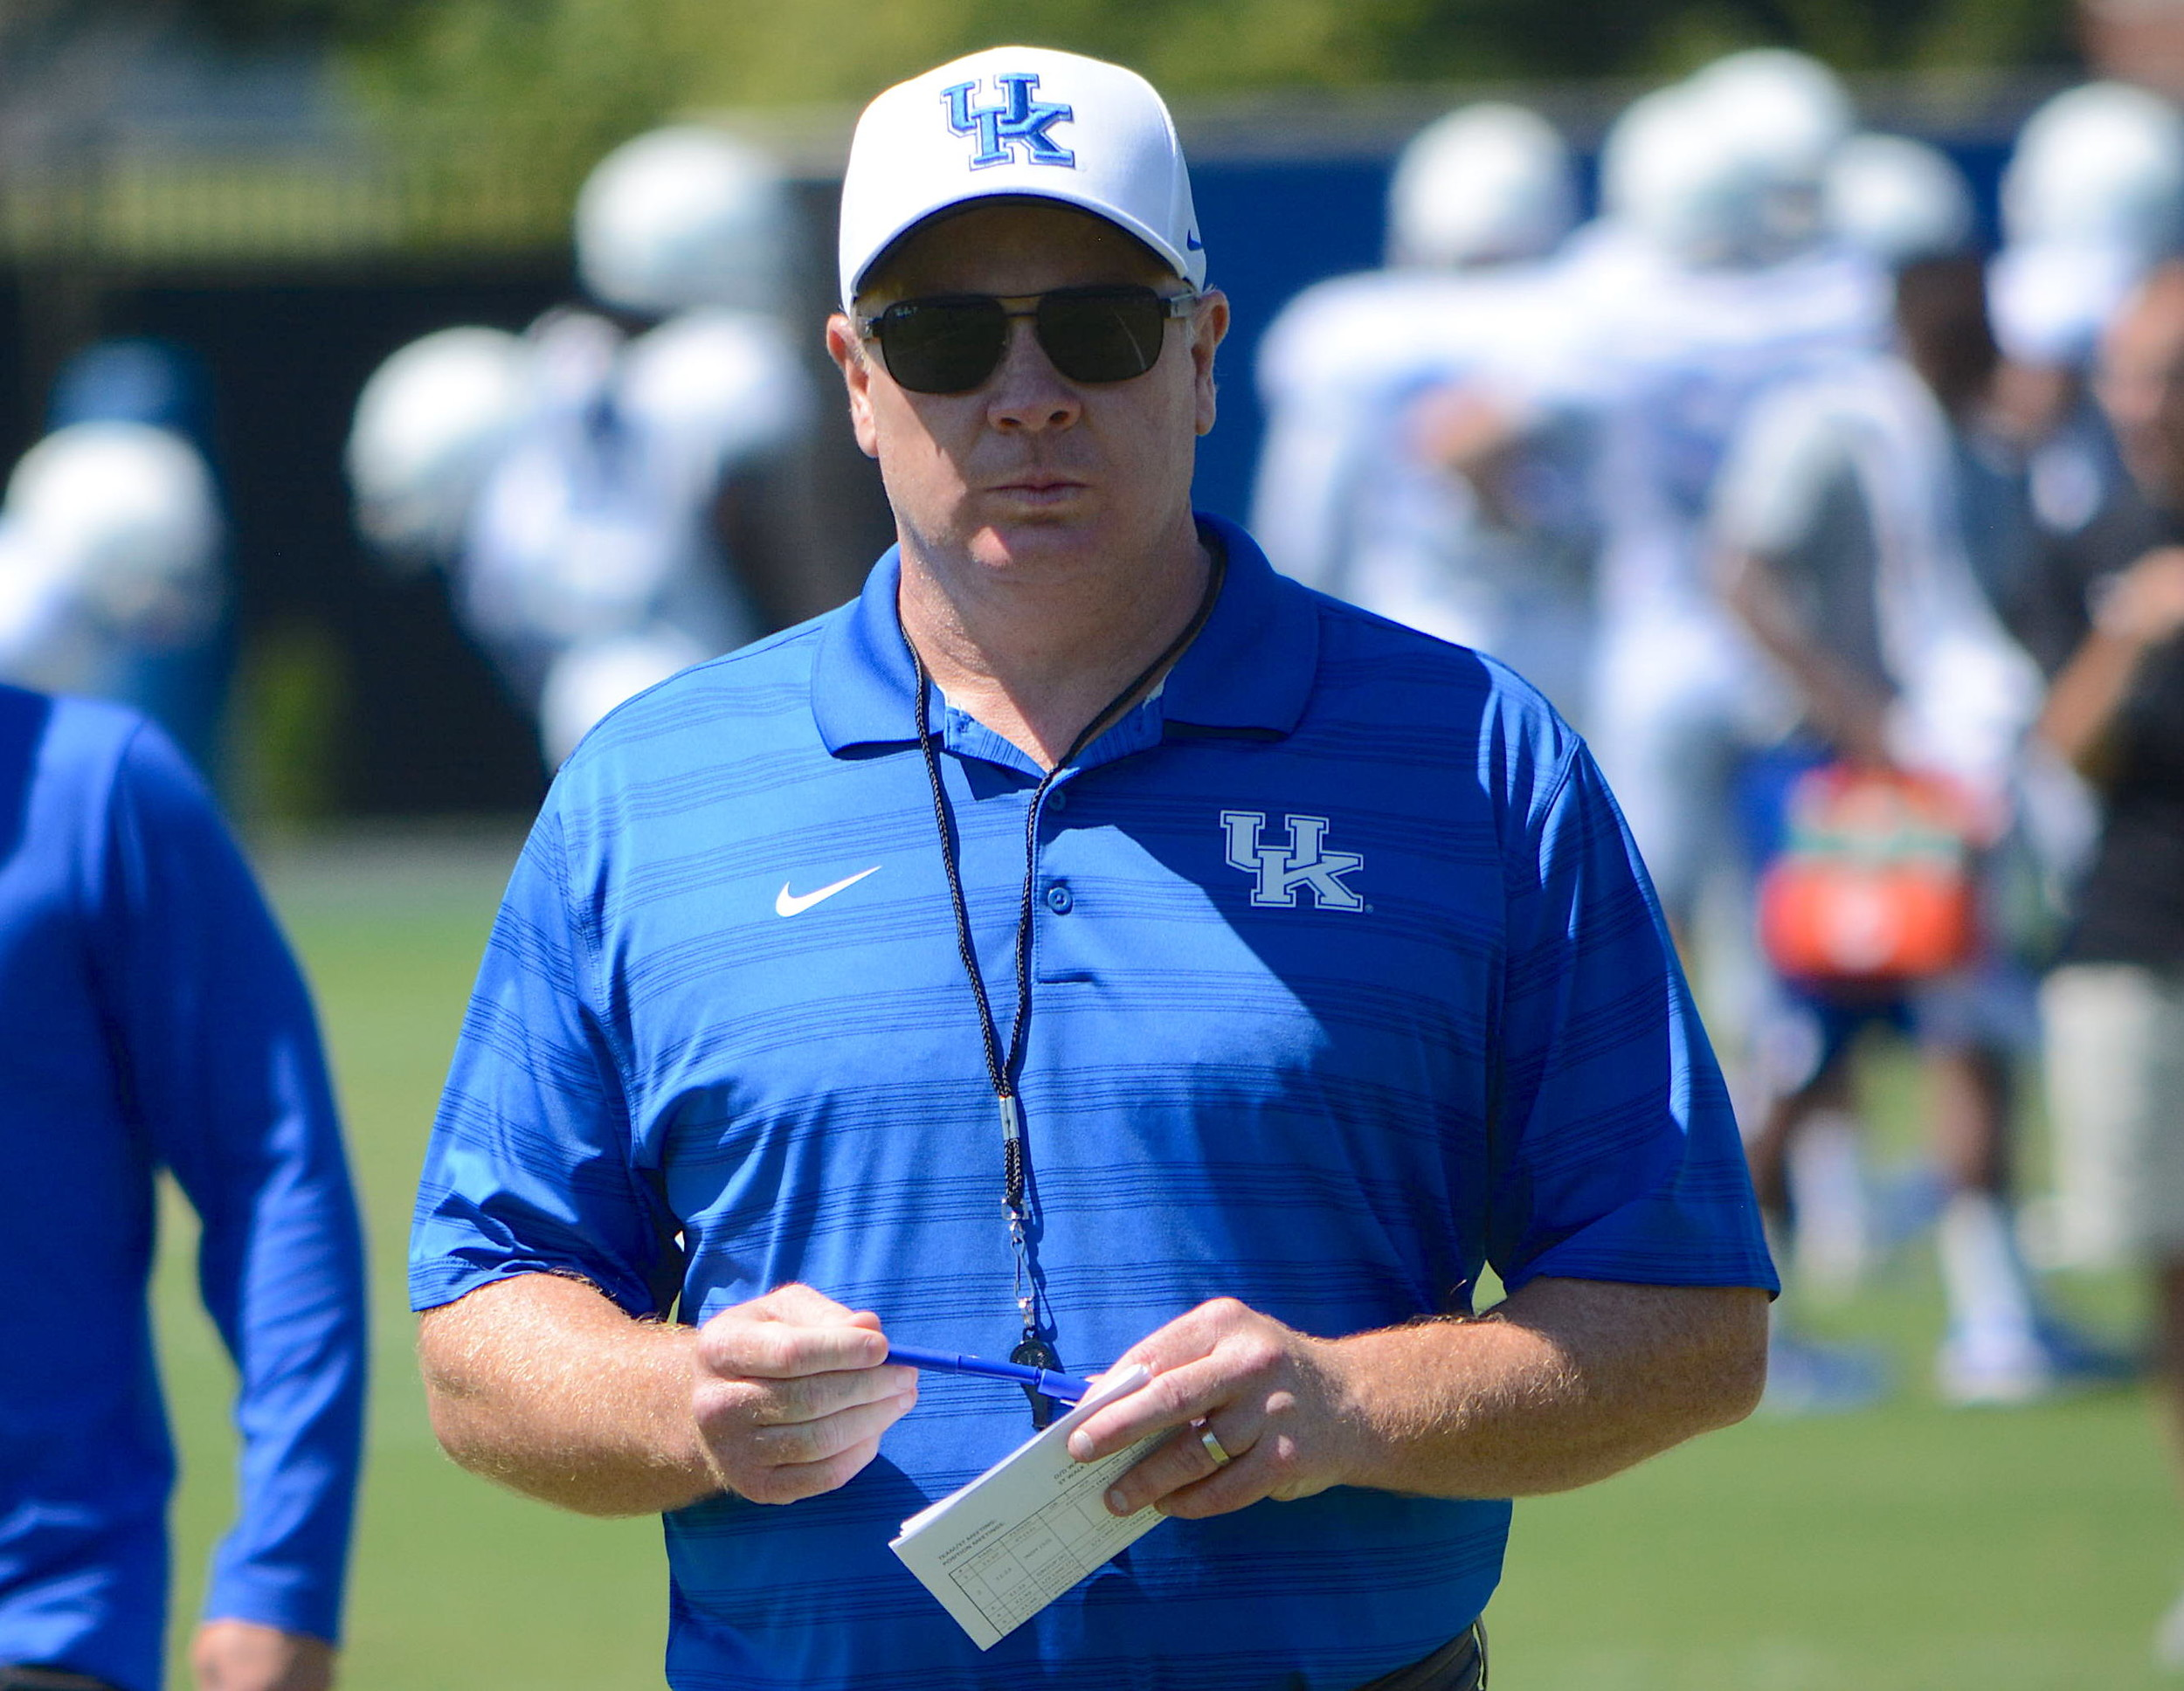 Mark Stoops and the Wildcats had their first scrimmage of fall workouts Saturday at Kroger Field and the Kentucky coach said the effort by his team produced mixed results. (Keith Taylor/Kentucky Today)